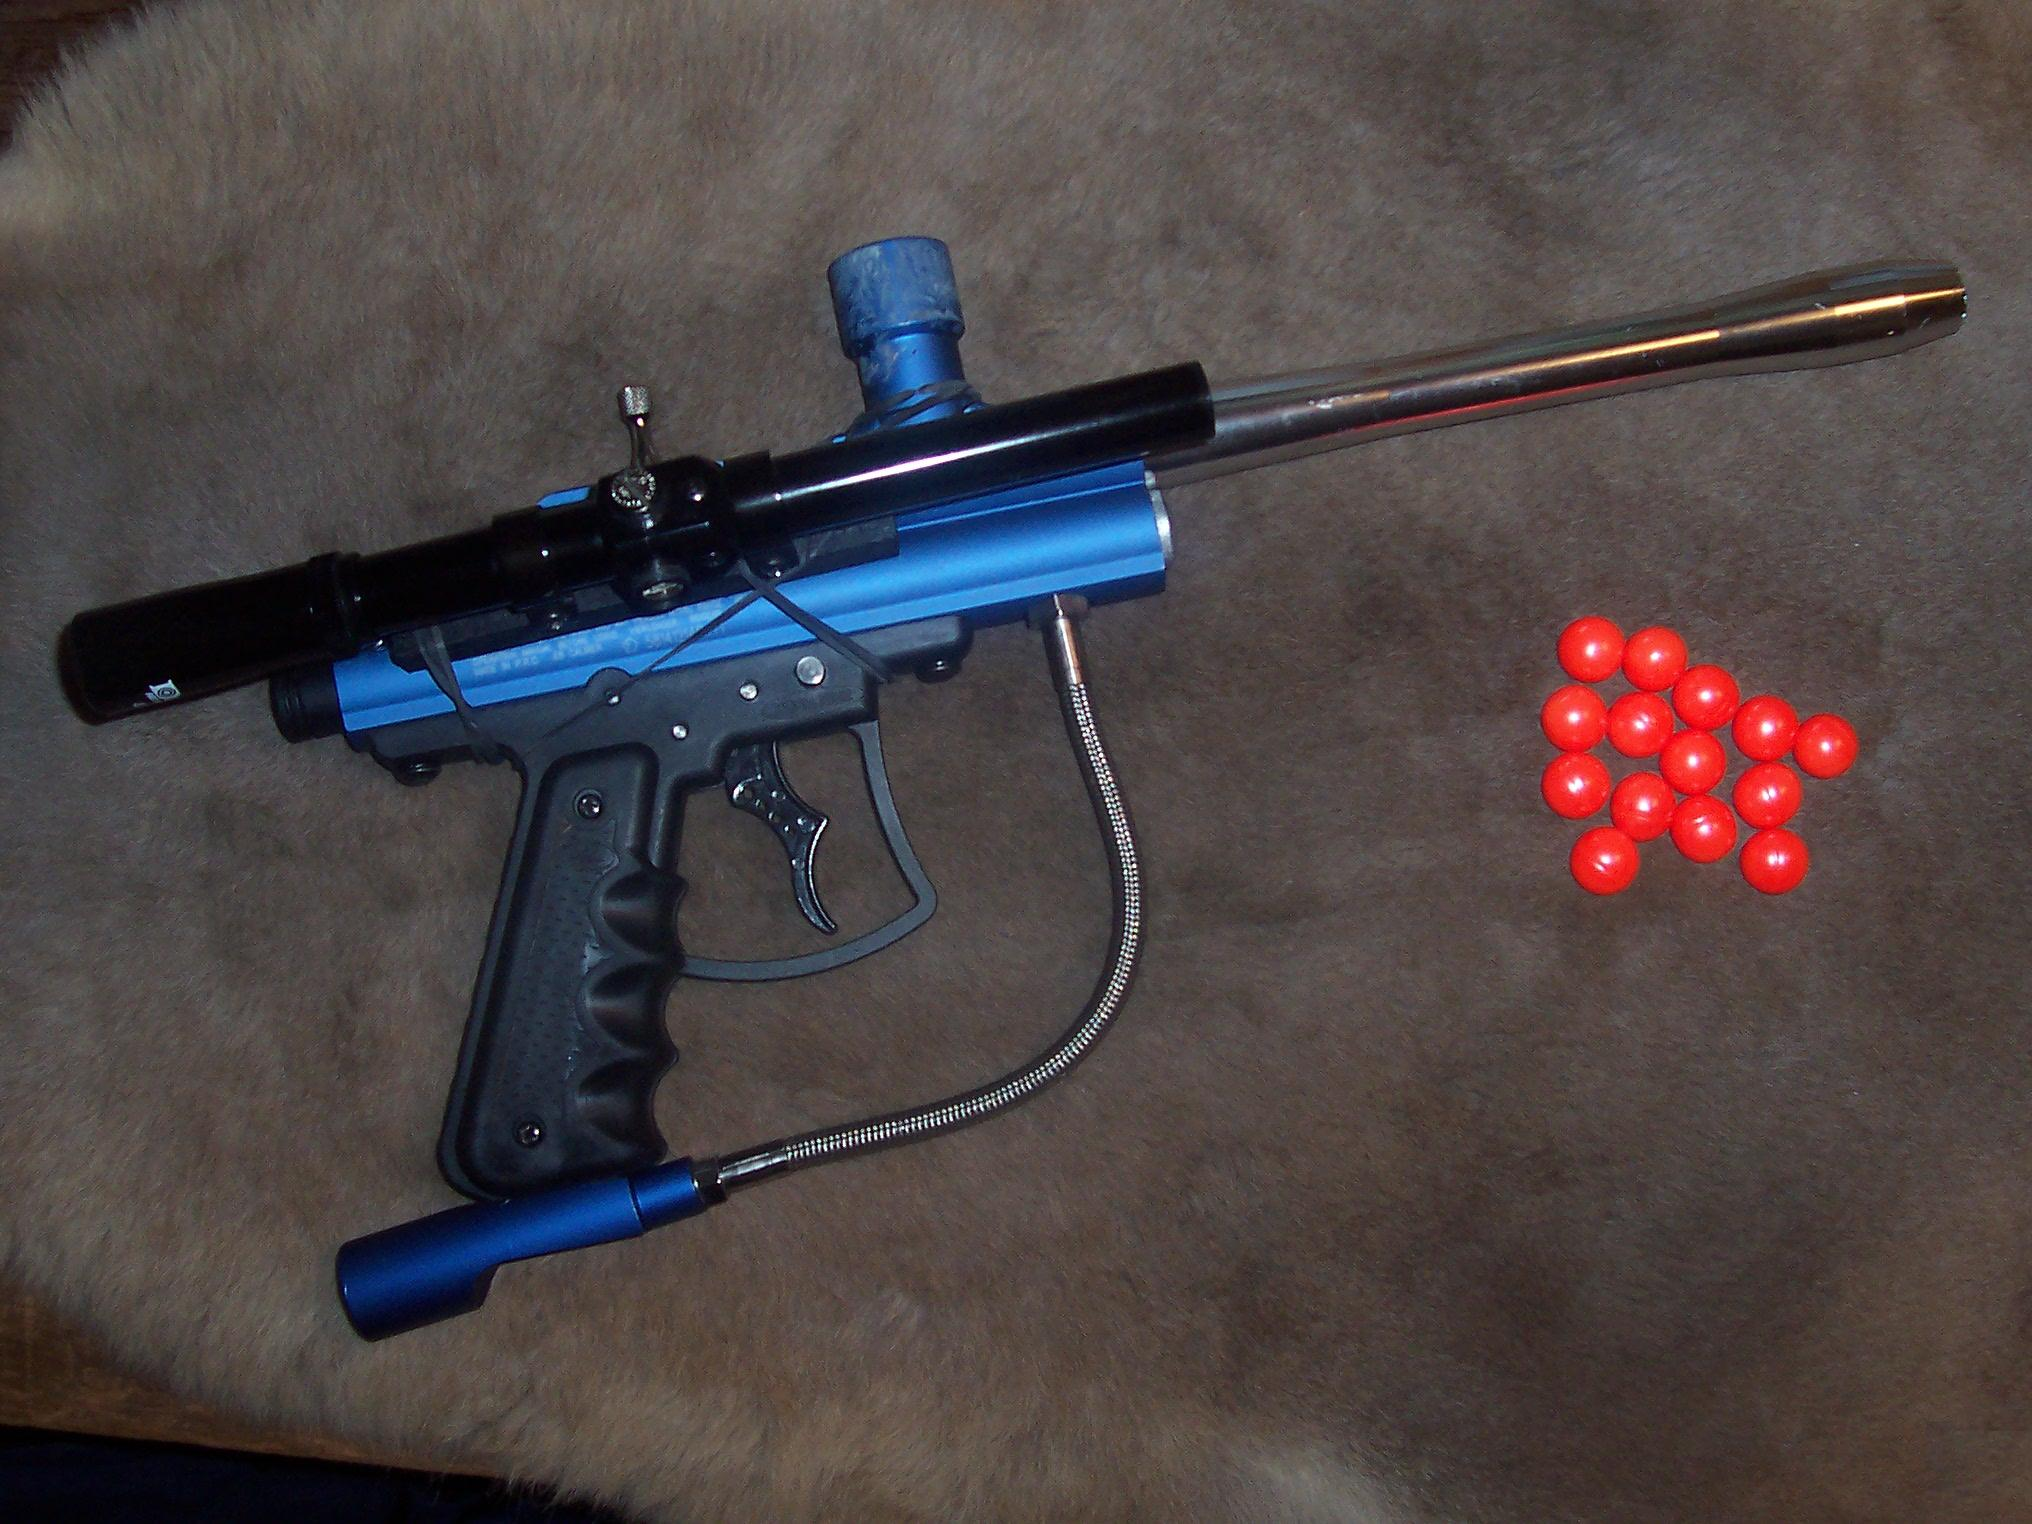 orion vl paintball gun manual